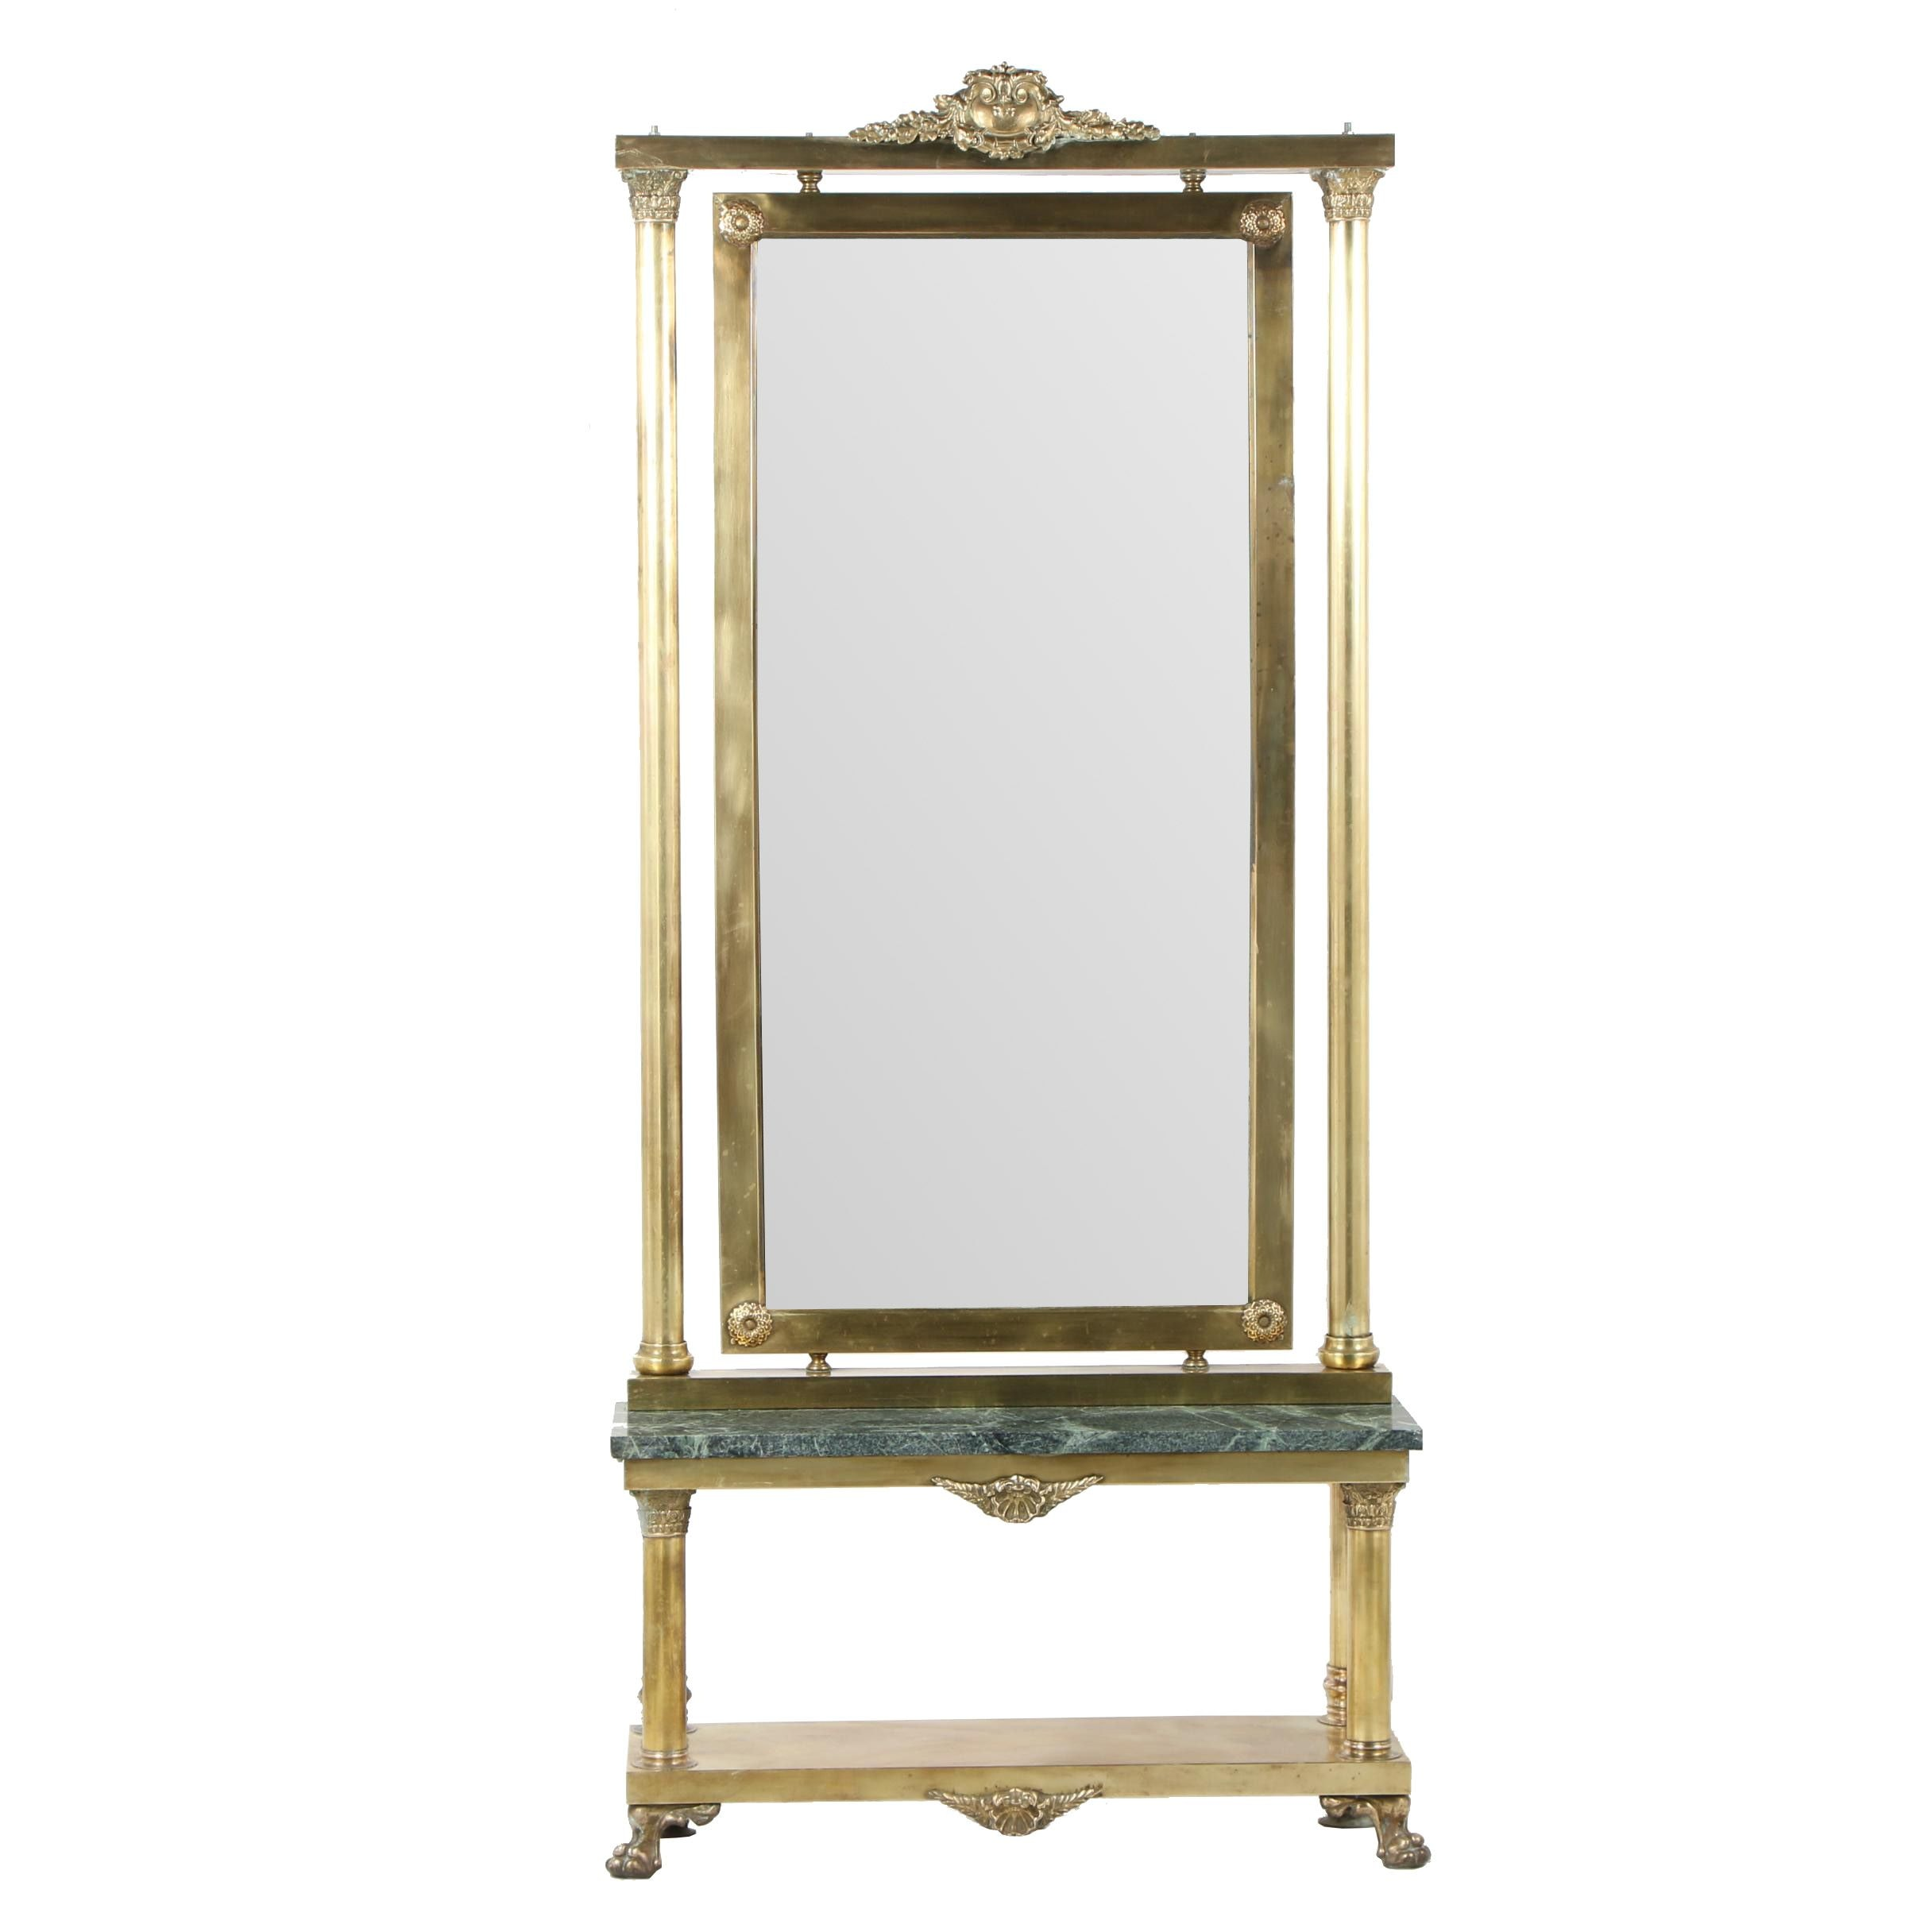 Neoclassical Style Brass and Marble Standing Pier Mirror, Early 20th Century